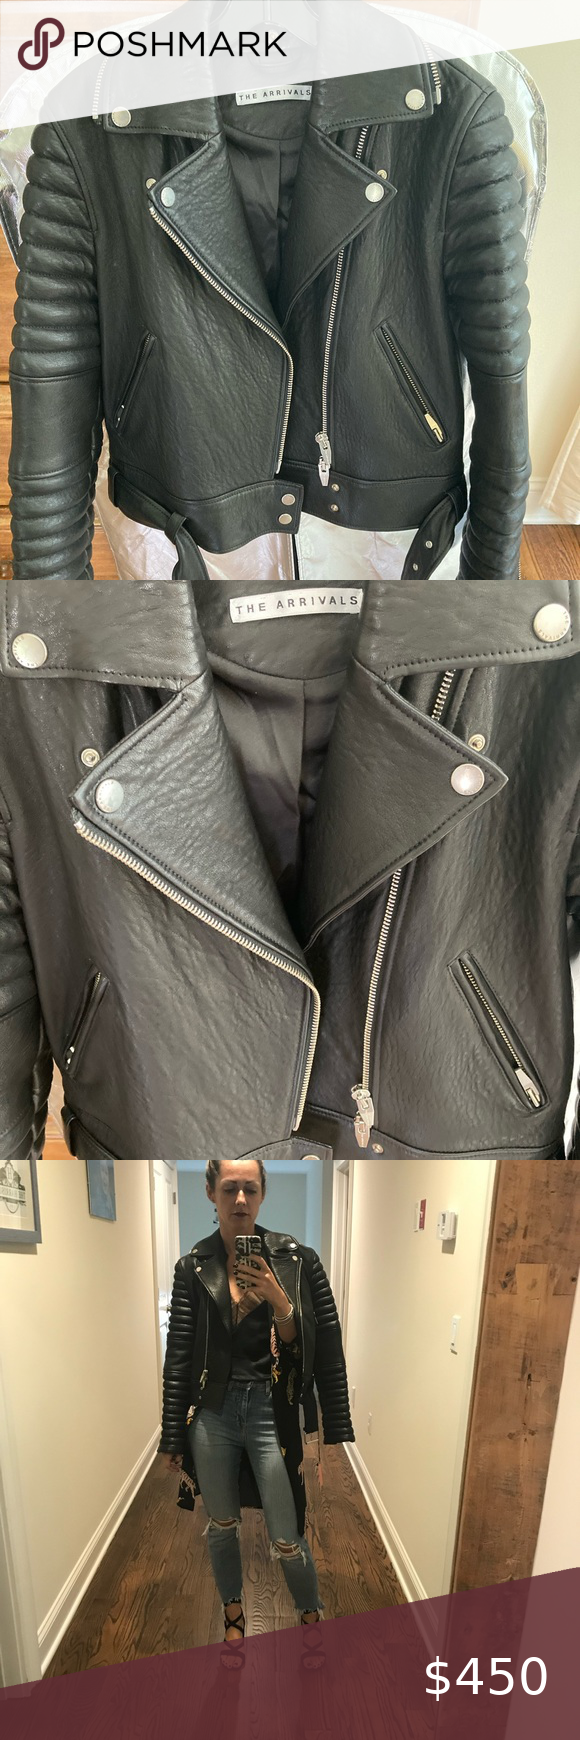 Leather Jacket Rainer 1 By The Arrivals Structured Slim Fit Fits Closer To The Body With Tailored Accents This Jacket Leather Jacket Jackets Clothes Design [ 1740 x 580 Pixel ]